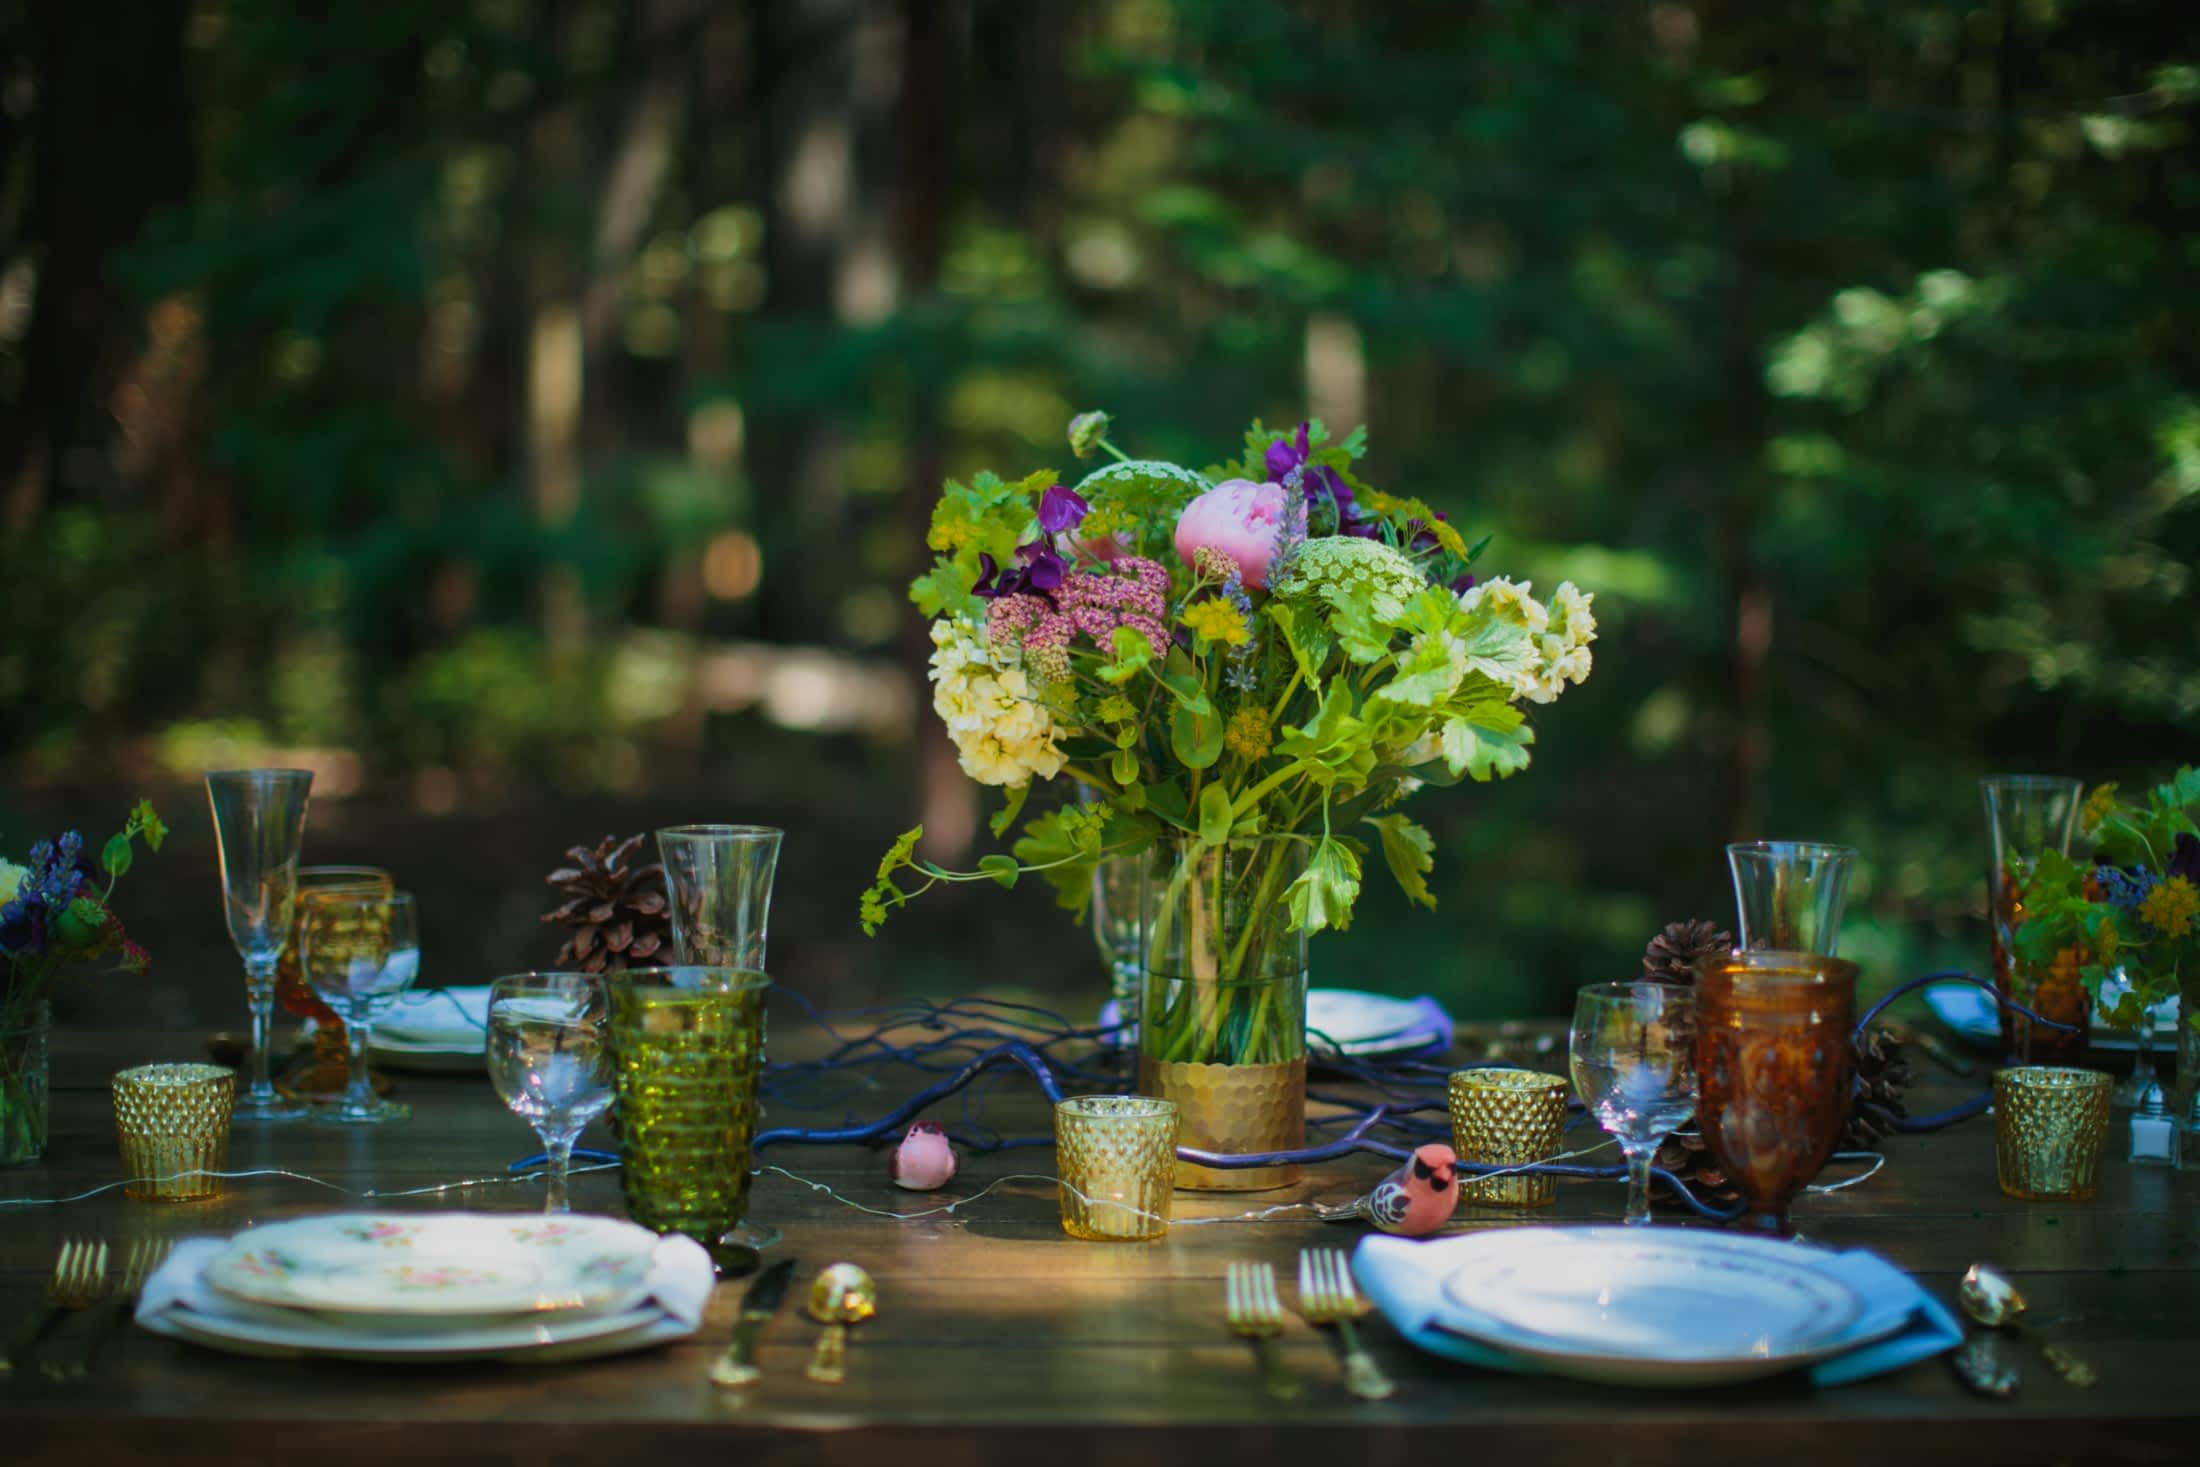 The table scape of flowers, mismatched glassware, vintage plates and pinecones.